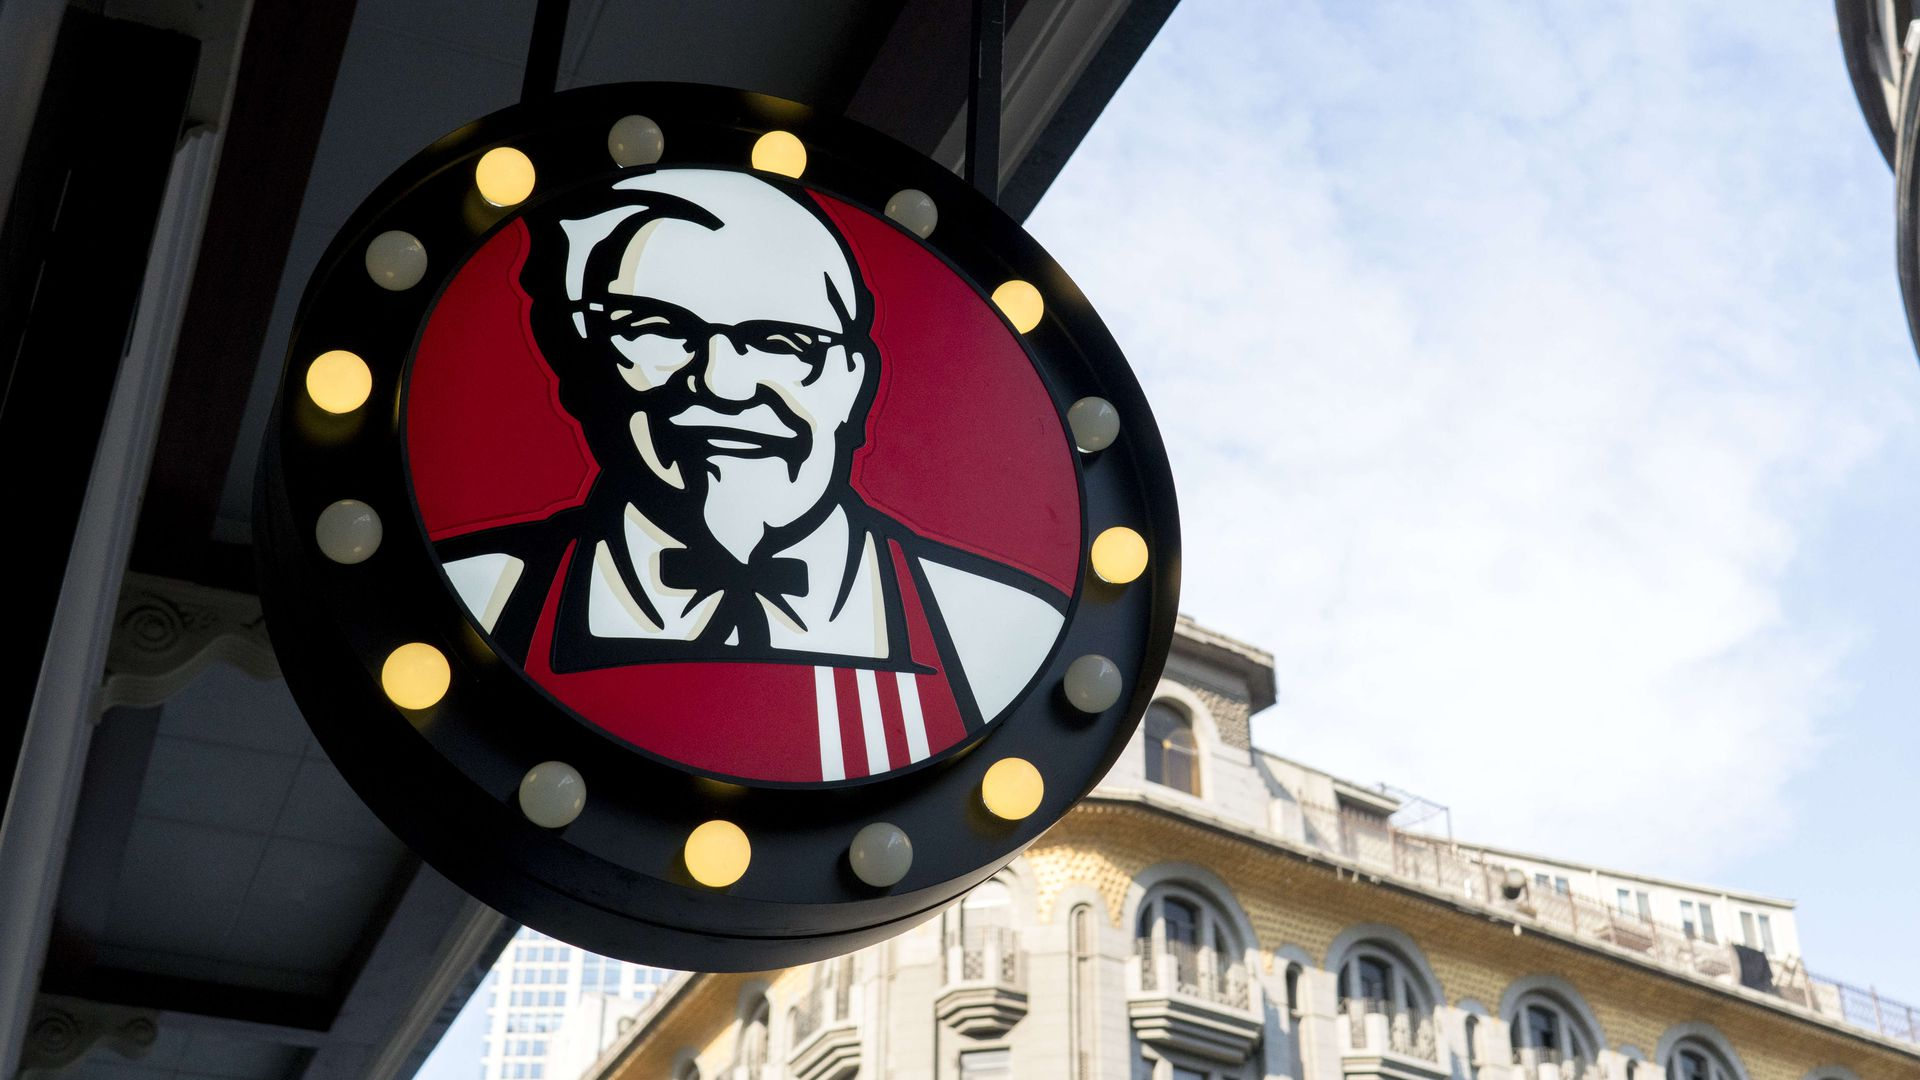 Colonel Sanders portrait on logo of a KFC restaurant.